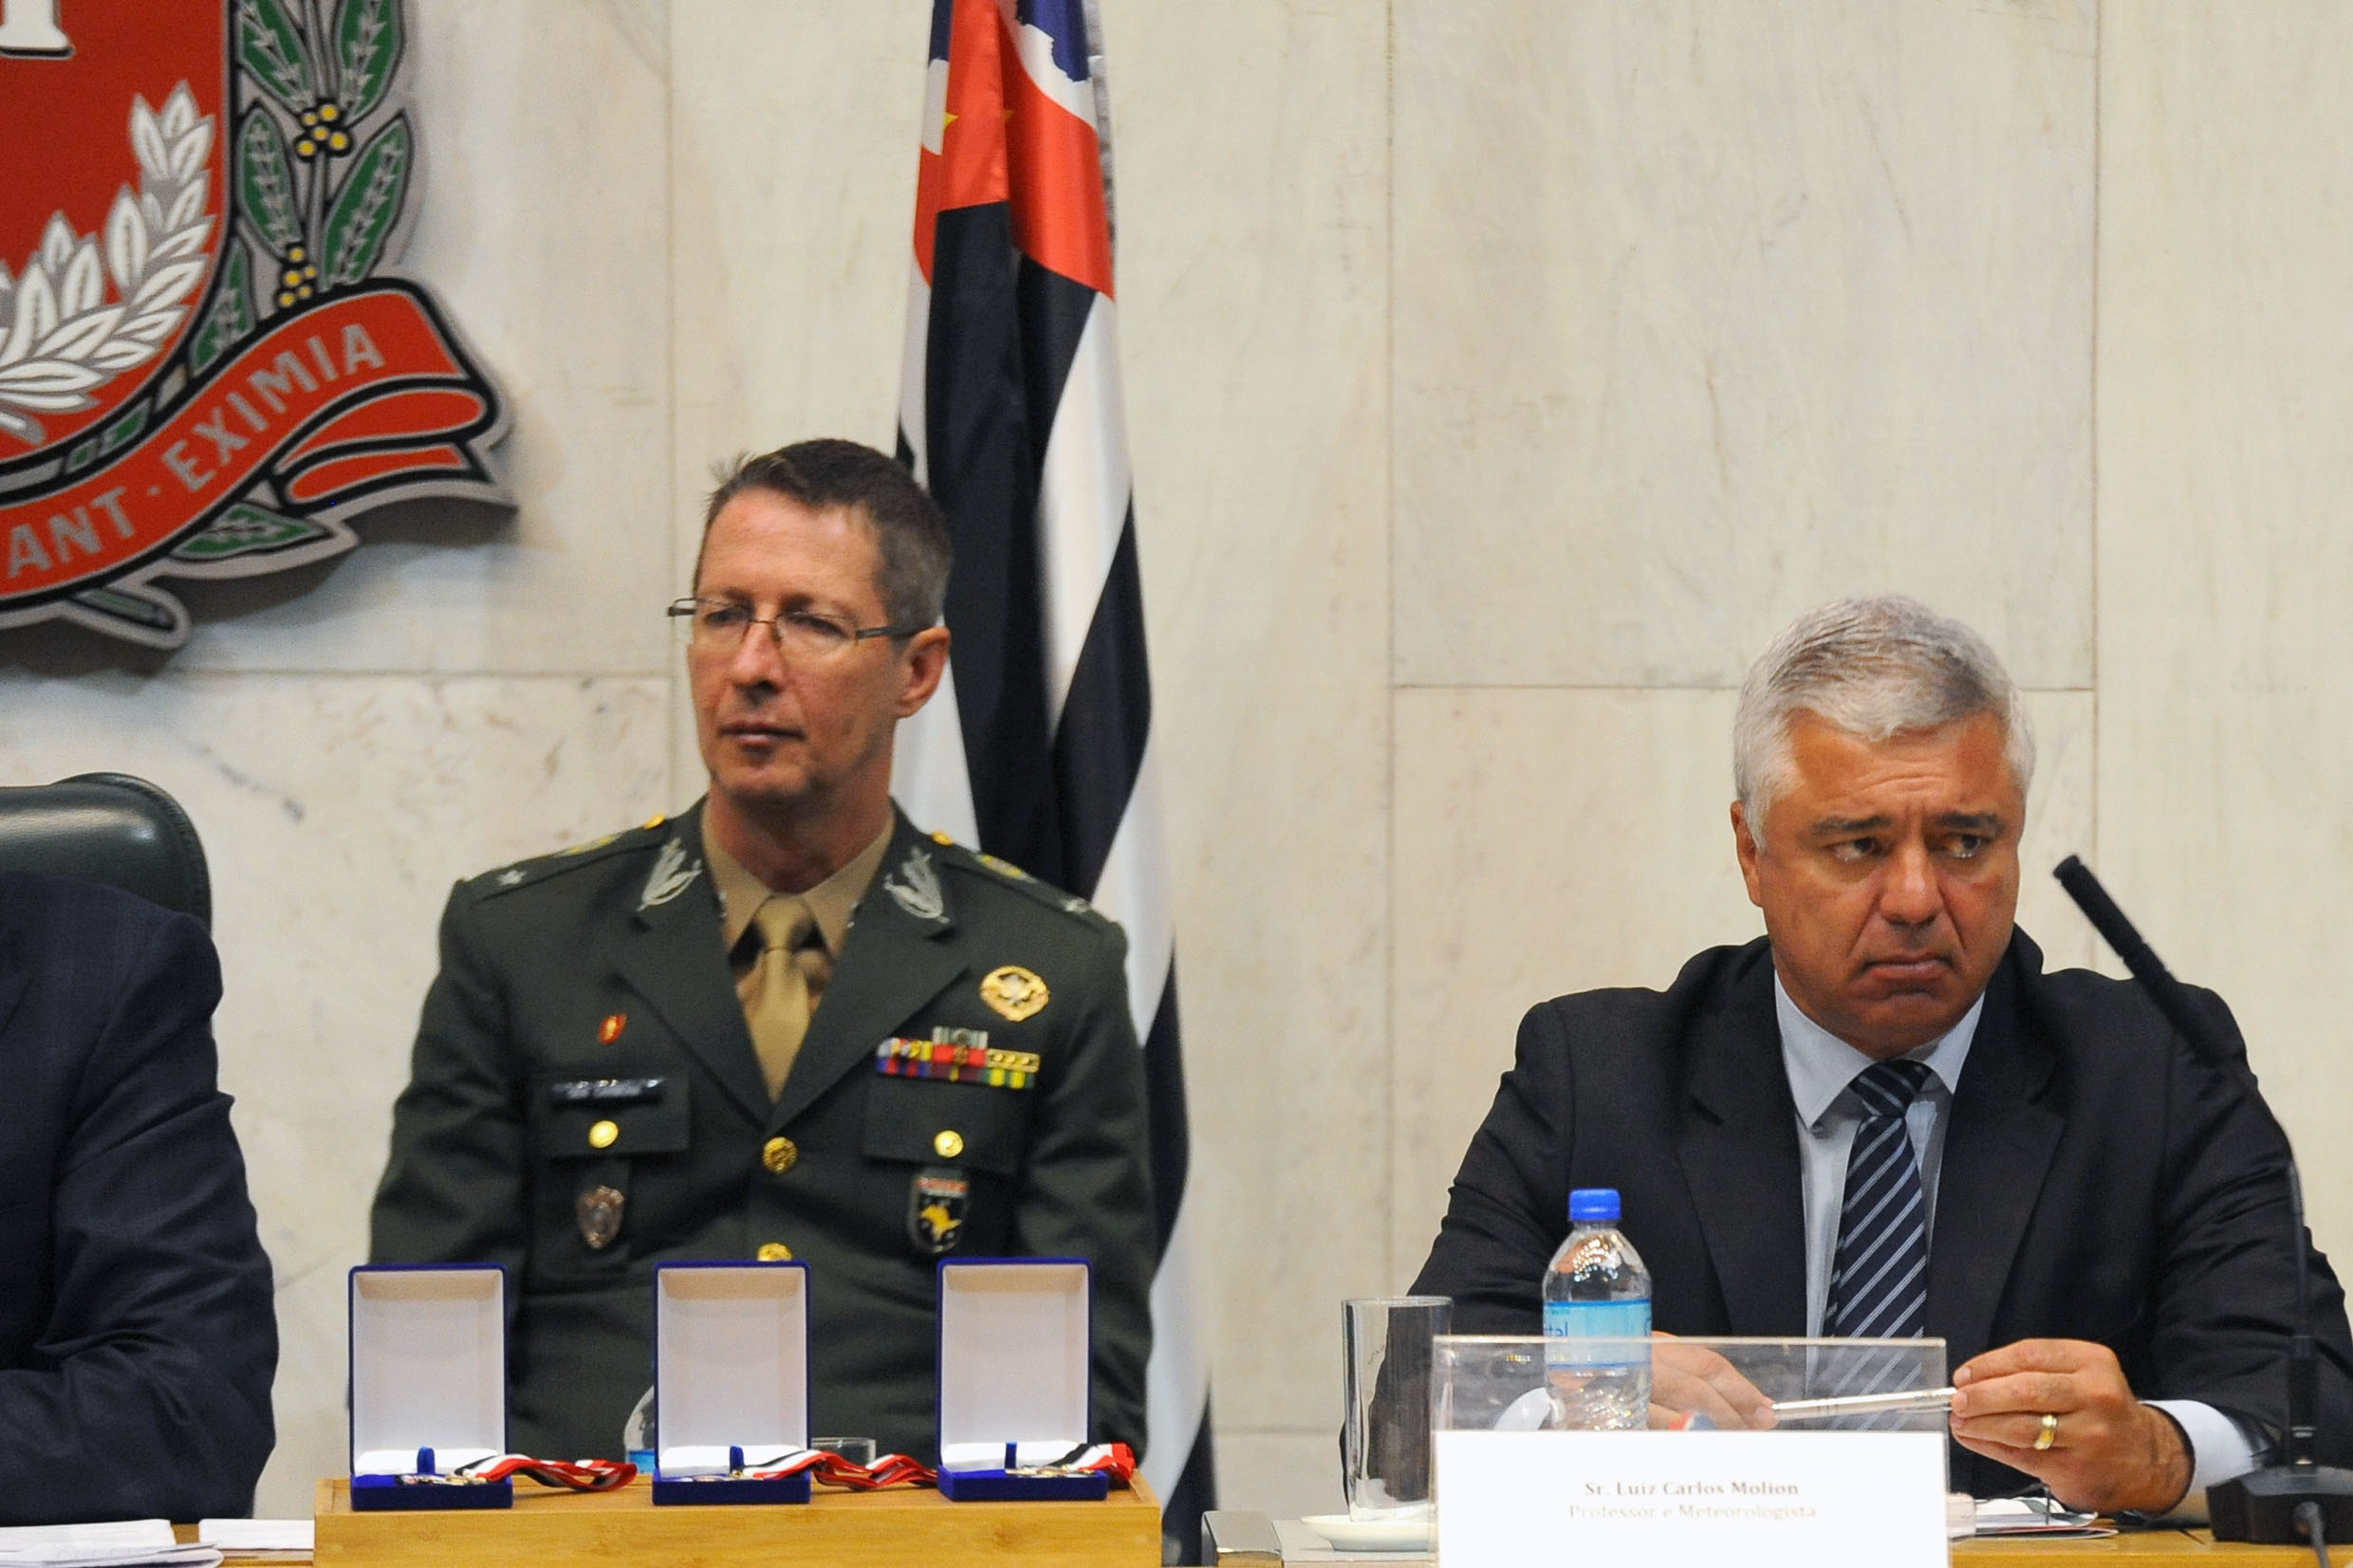 General Carmona e Major Olimpio <a style='float:right' href='https://www3.al.sp.gov.br/repositorio/noticia/N-12-2019/fg244871.jpg' target=_blank><img src='/_img/material-file-download-white.png' width='14px' alt='Clique para baixar a imagem'></a>